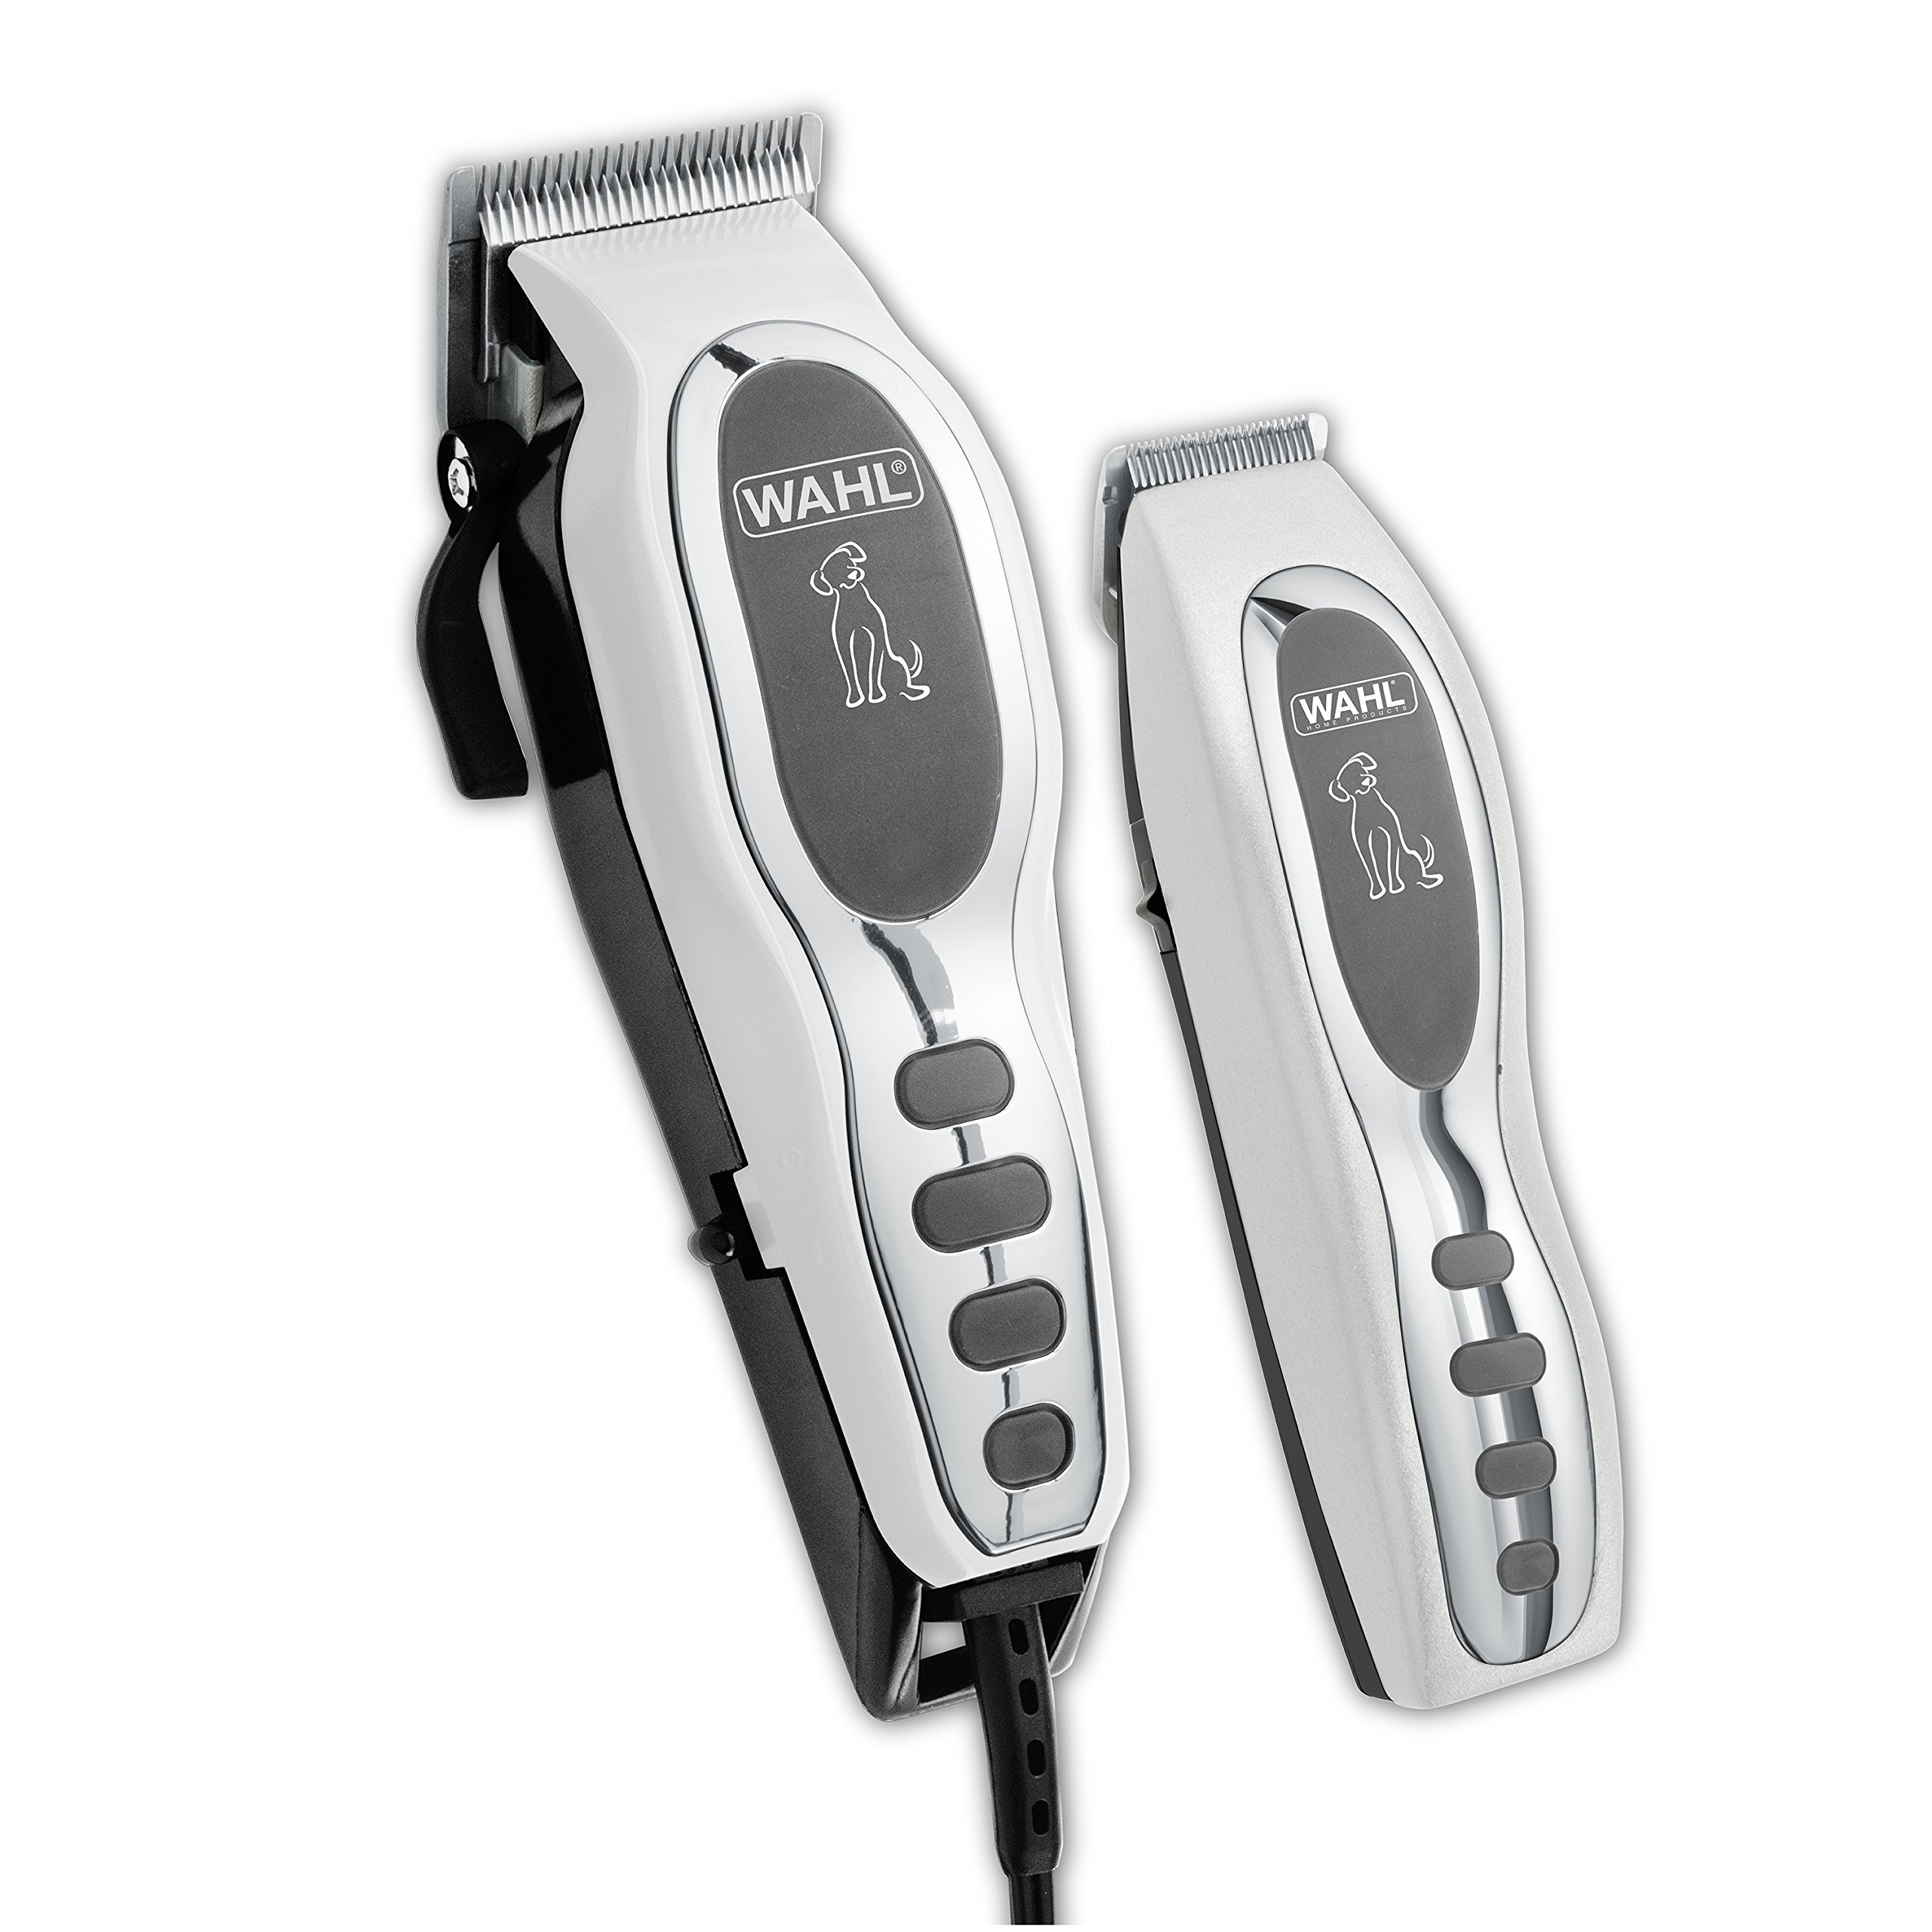 Wahl Pet-Pro Clipper & Trimmer Pet Grooming Combo Kit for Dogs and Cats: Comes with a corded Clipper and a battery operated Trimmer, by The Brand Used By Professionals. #9284 by WAHL